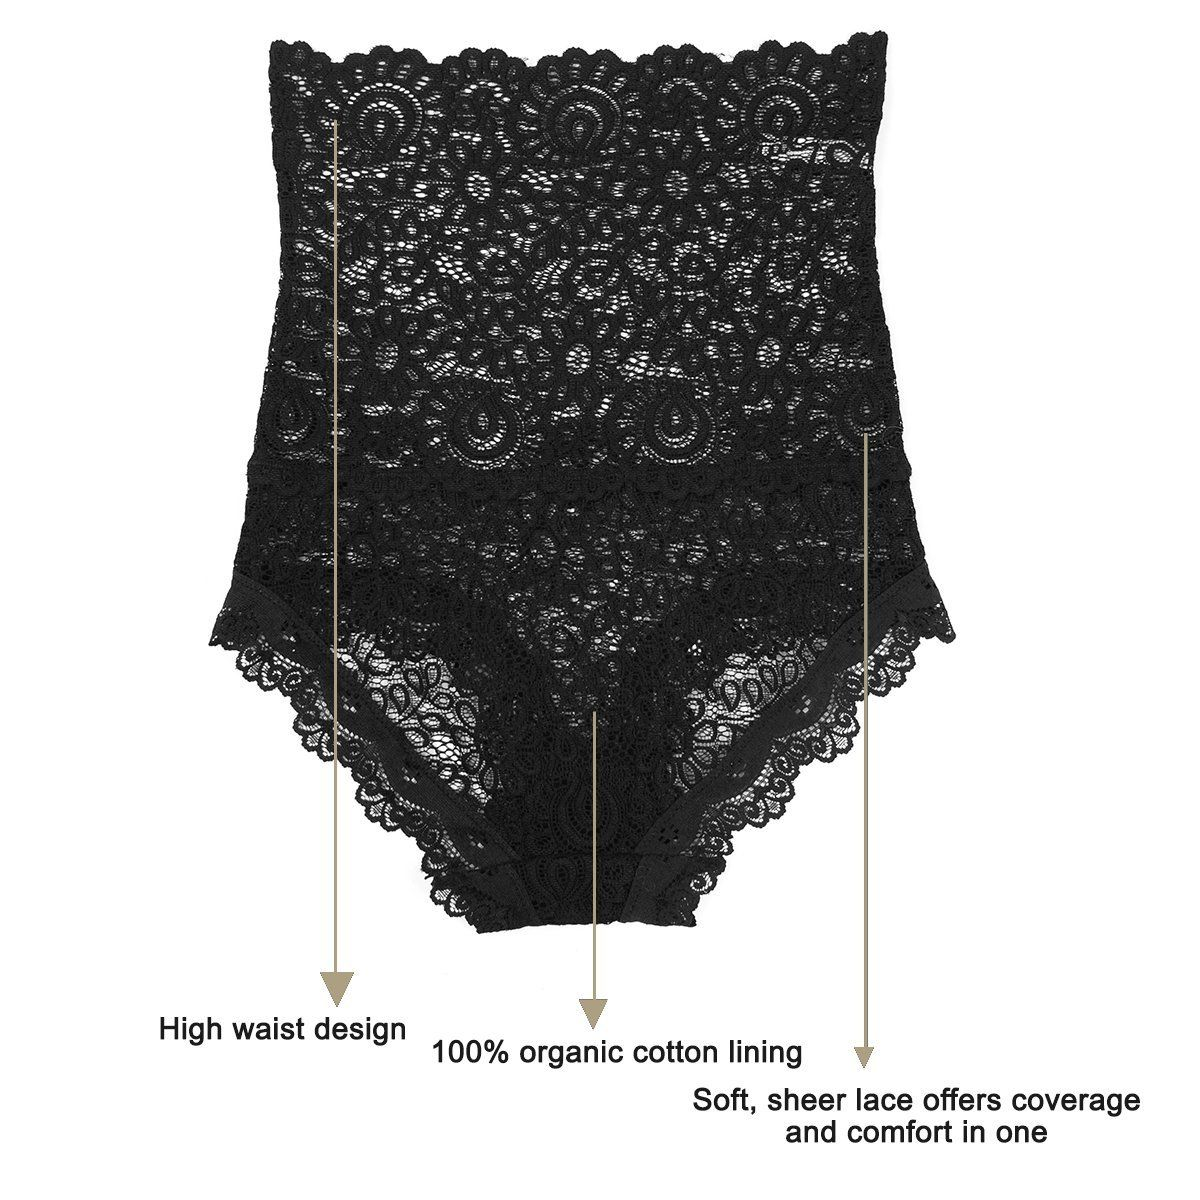 4bff2883b Eves Temptation Corey HighWaisted Panties Slimming Floral Stretchy Lace  Sexy Lingerie Underwear for Women Black Large     Click on the image for  additional ...